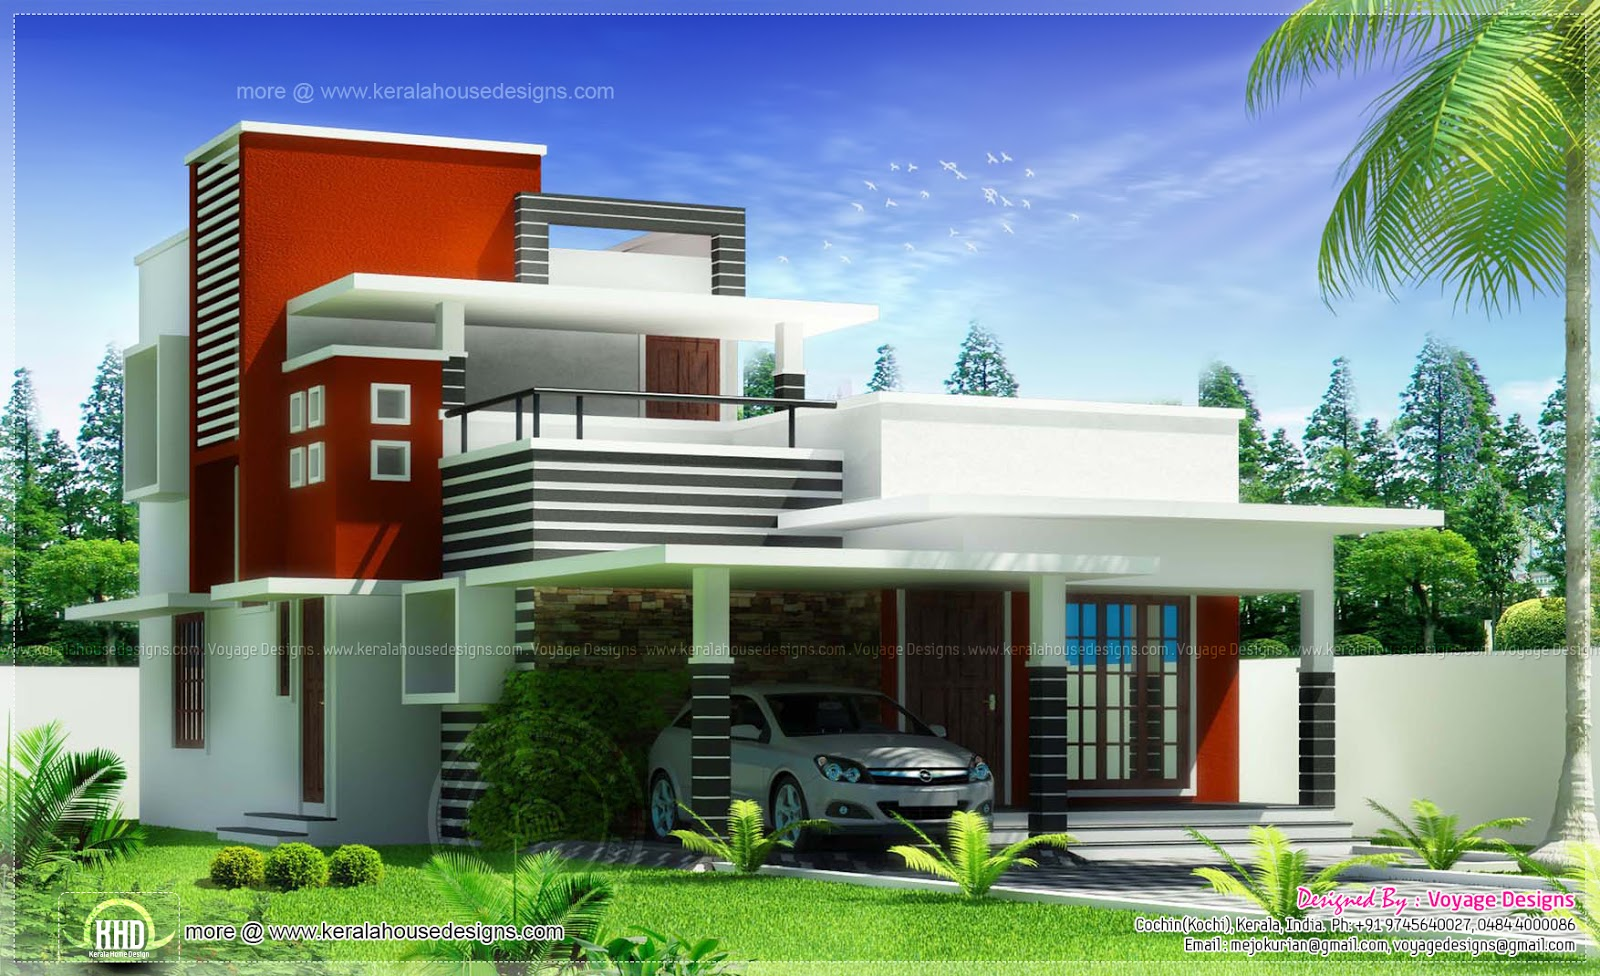 3 bed room contemporary style house home kerala plans for Home designs kerala style